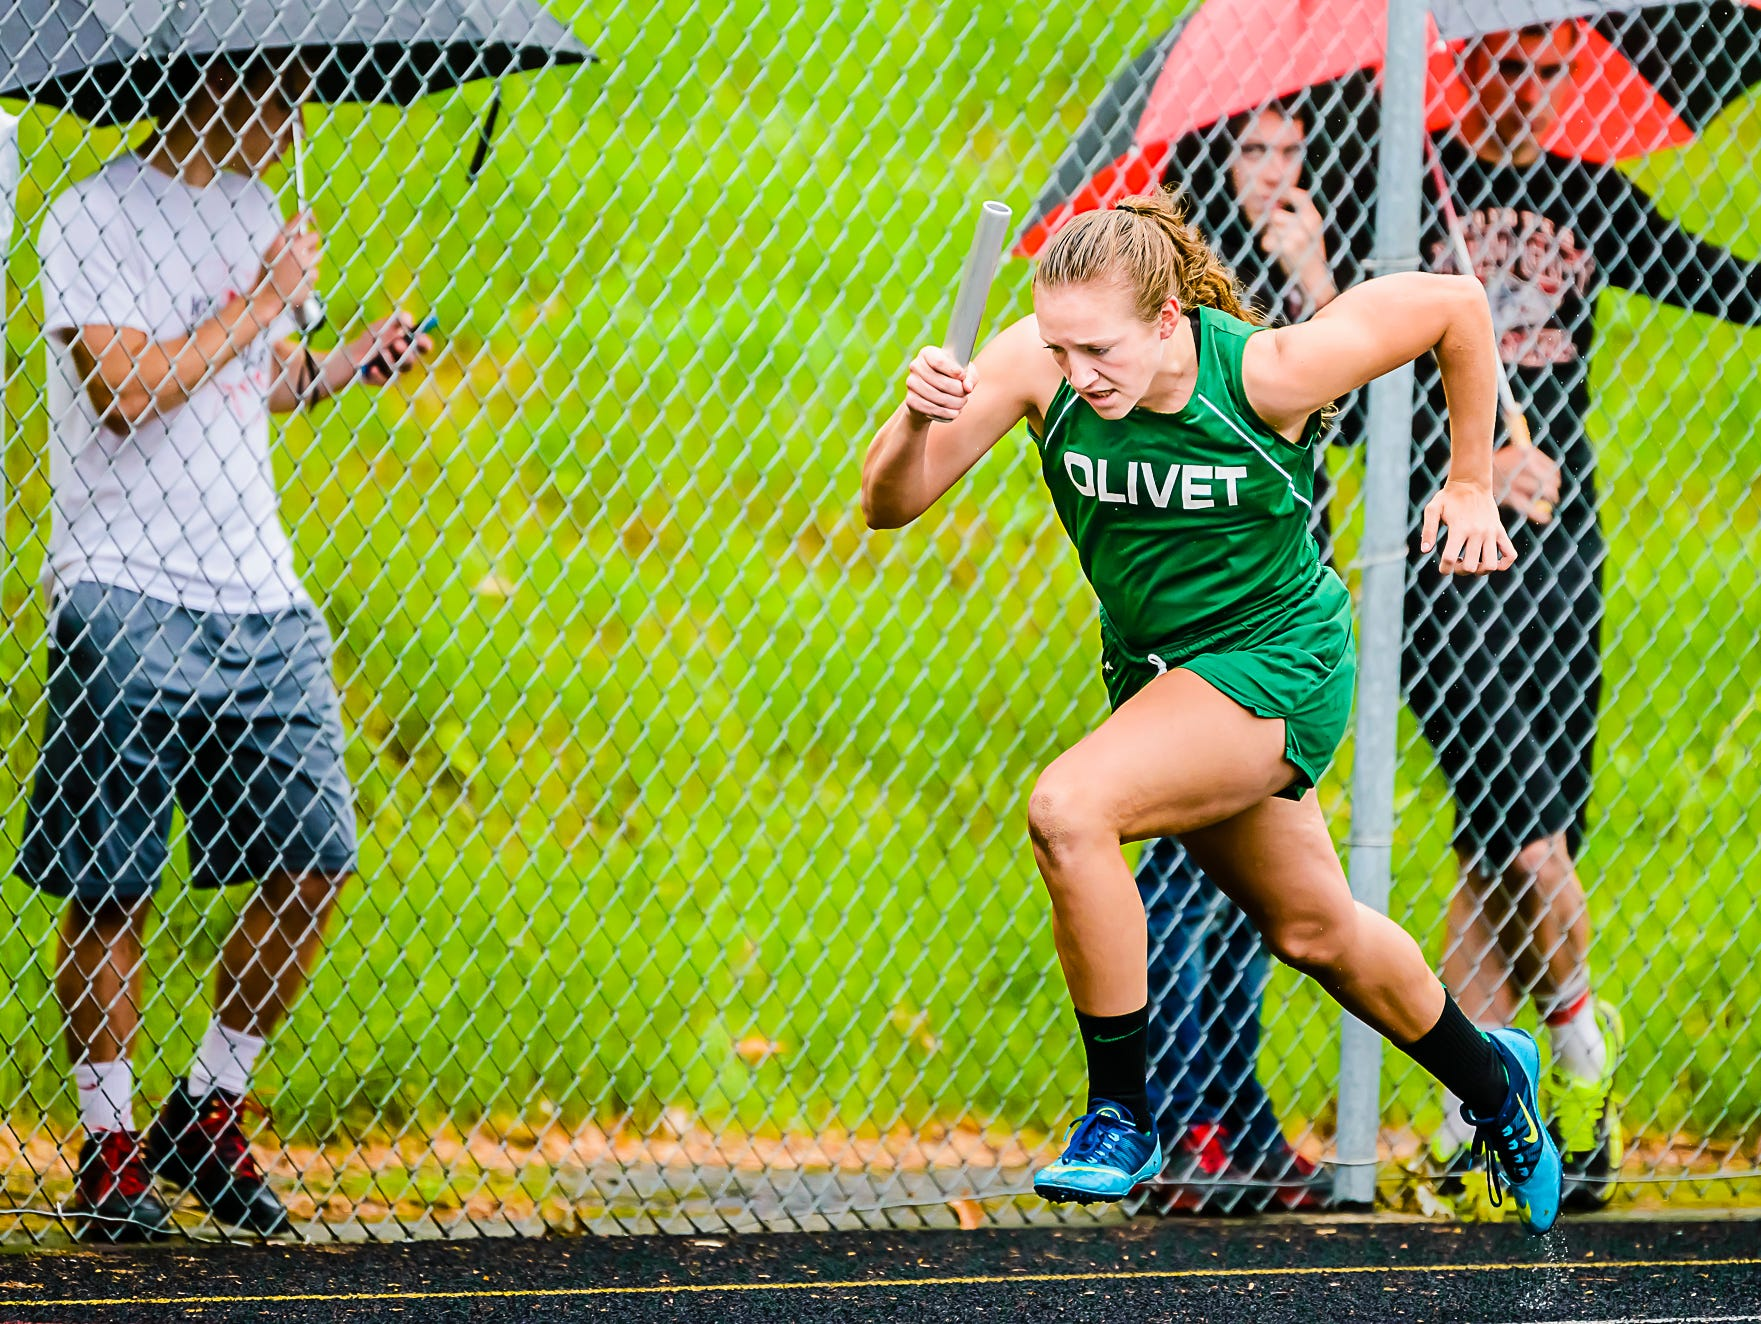 Logan Kyre of Olivet leaps out of the blocks as she begins her leg in her finals heat of the 4x100 meter relay.